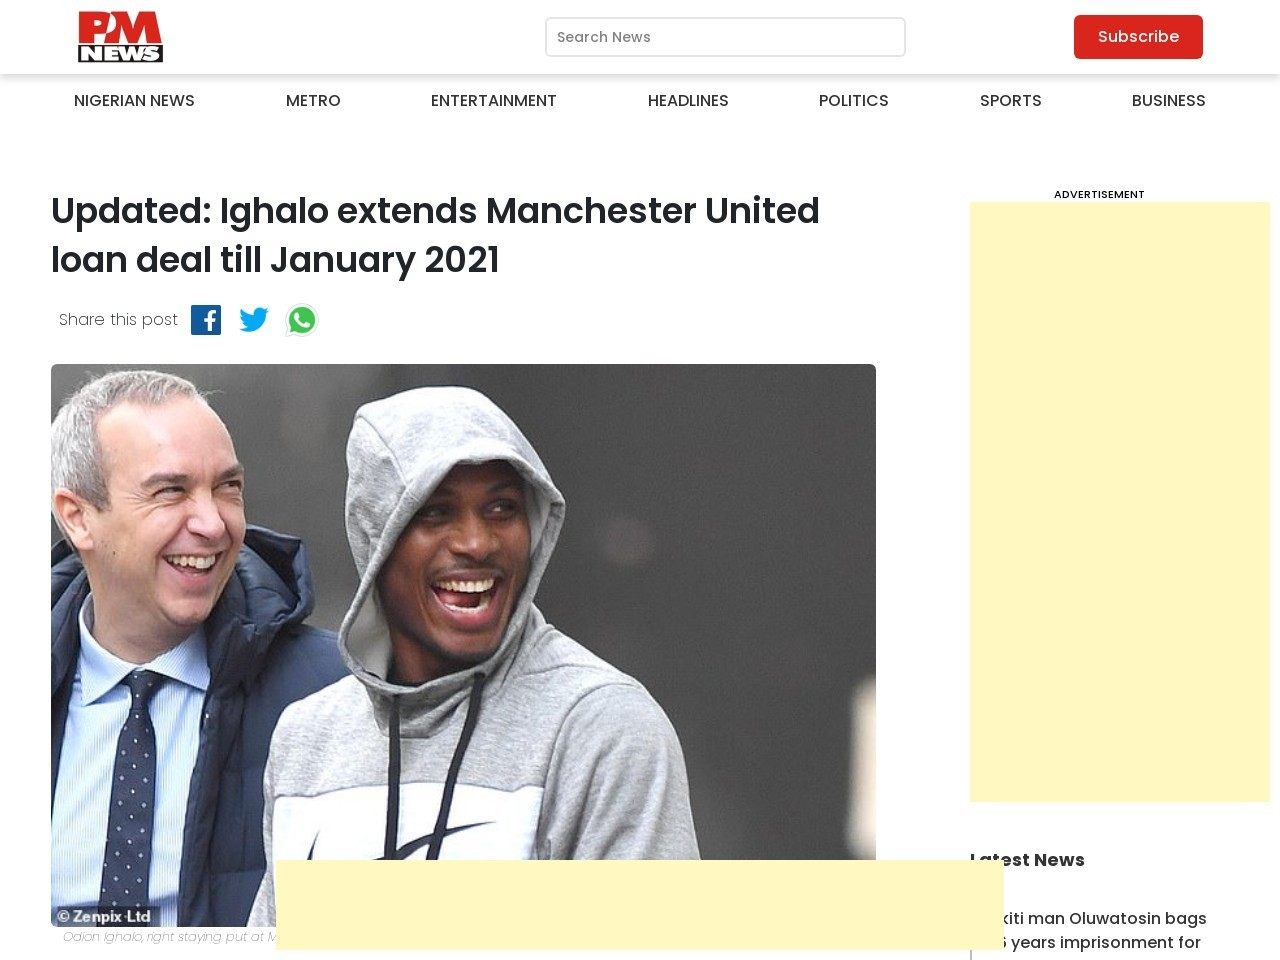 JUST IN: Ighalo extends Manchester United loan deal till January 2021